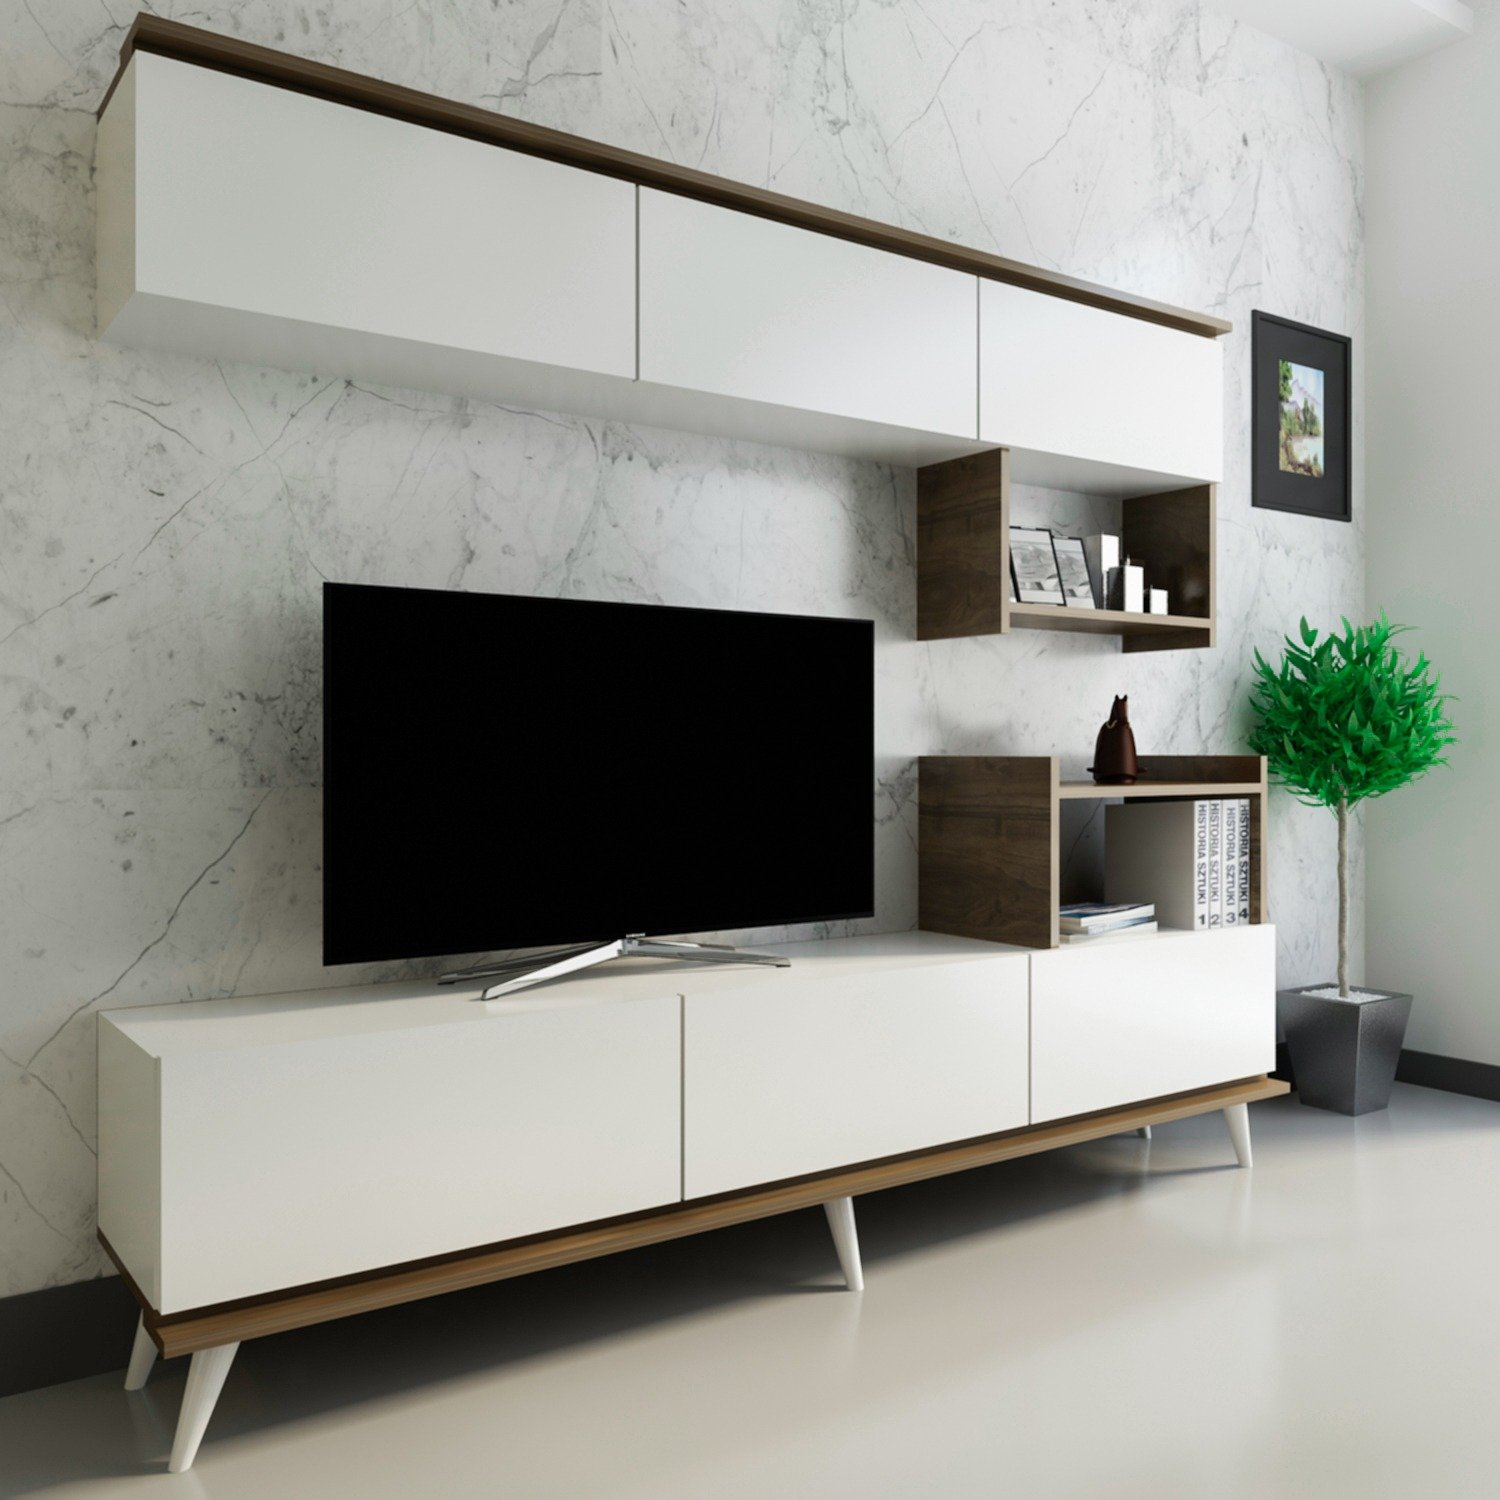 Mobilier50087